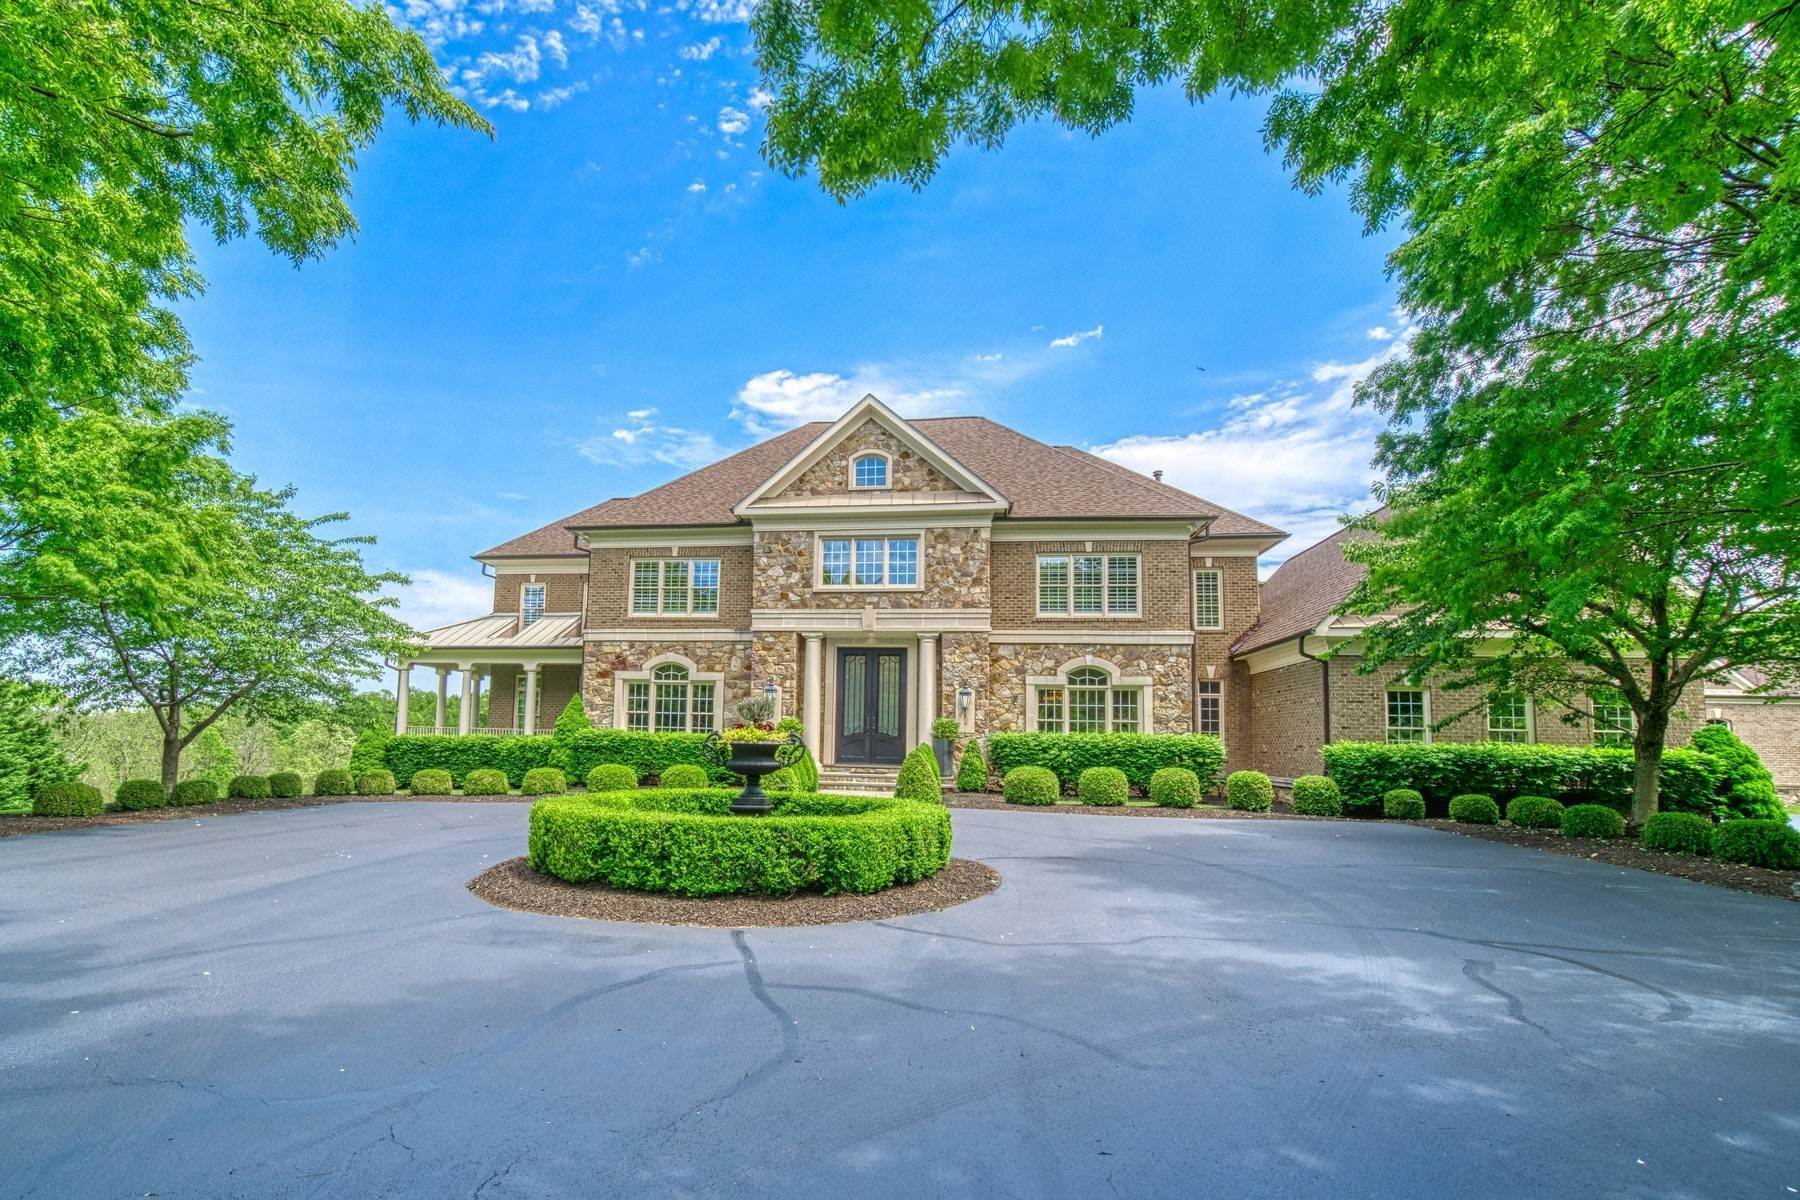 Single Family Homes for Sale at Extraordinary Executive Estate 17050 Silver Charm Place, Leesburg, Virginia, 20176 United States